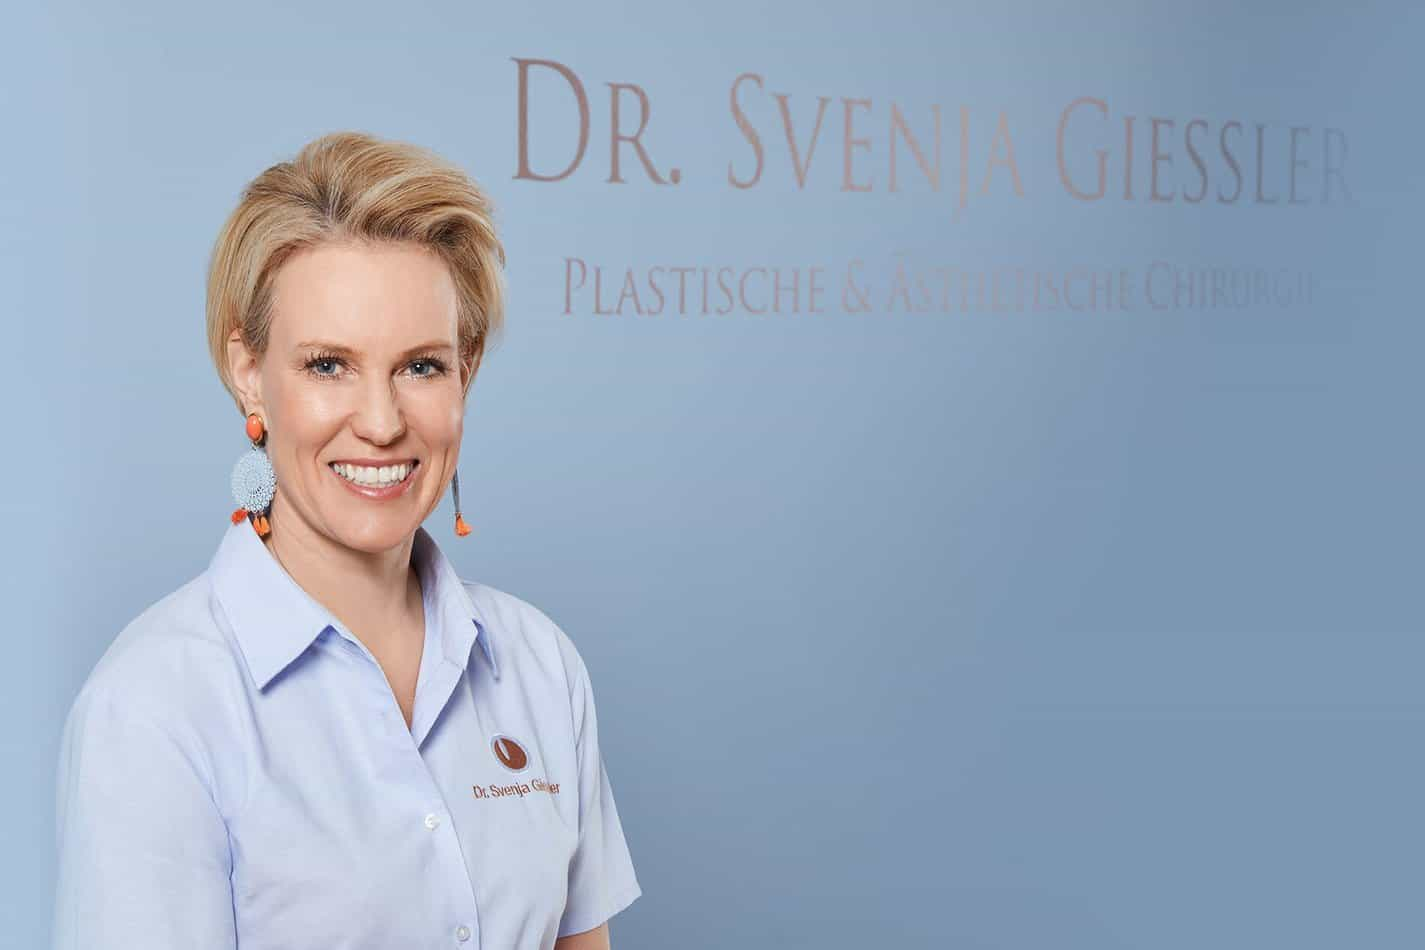 Dr Geissler is a plastic surgeon in Munich who offers a variety of plastic and cosmetic treatments